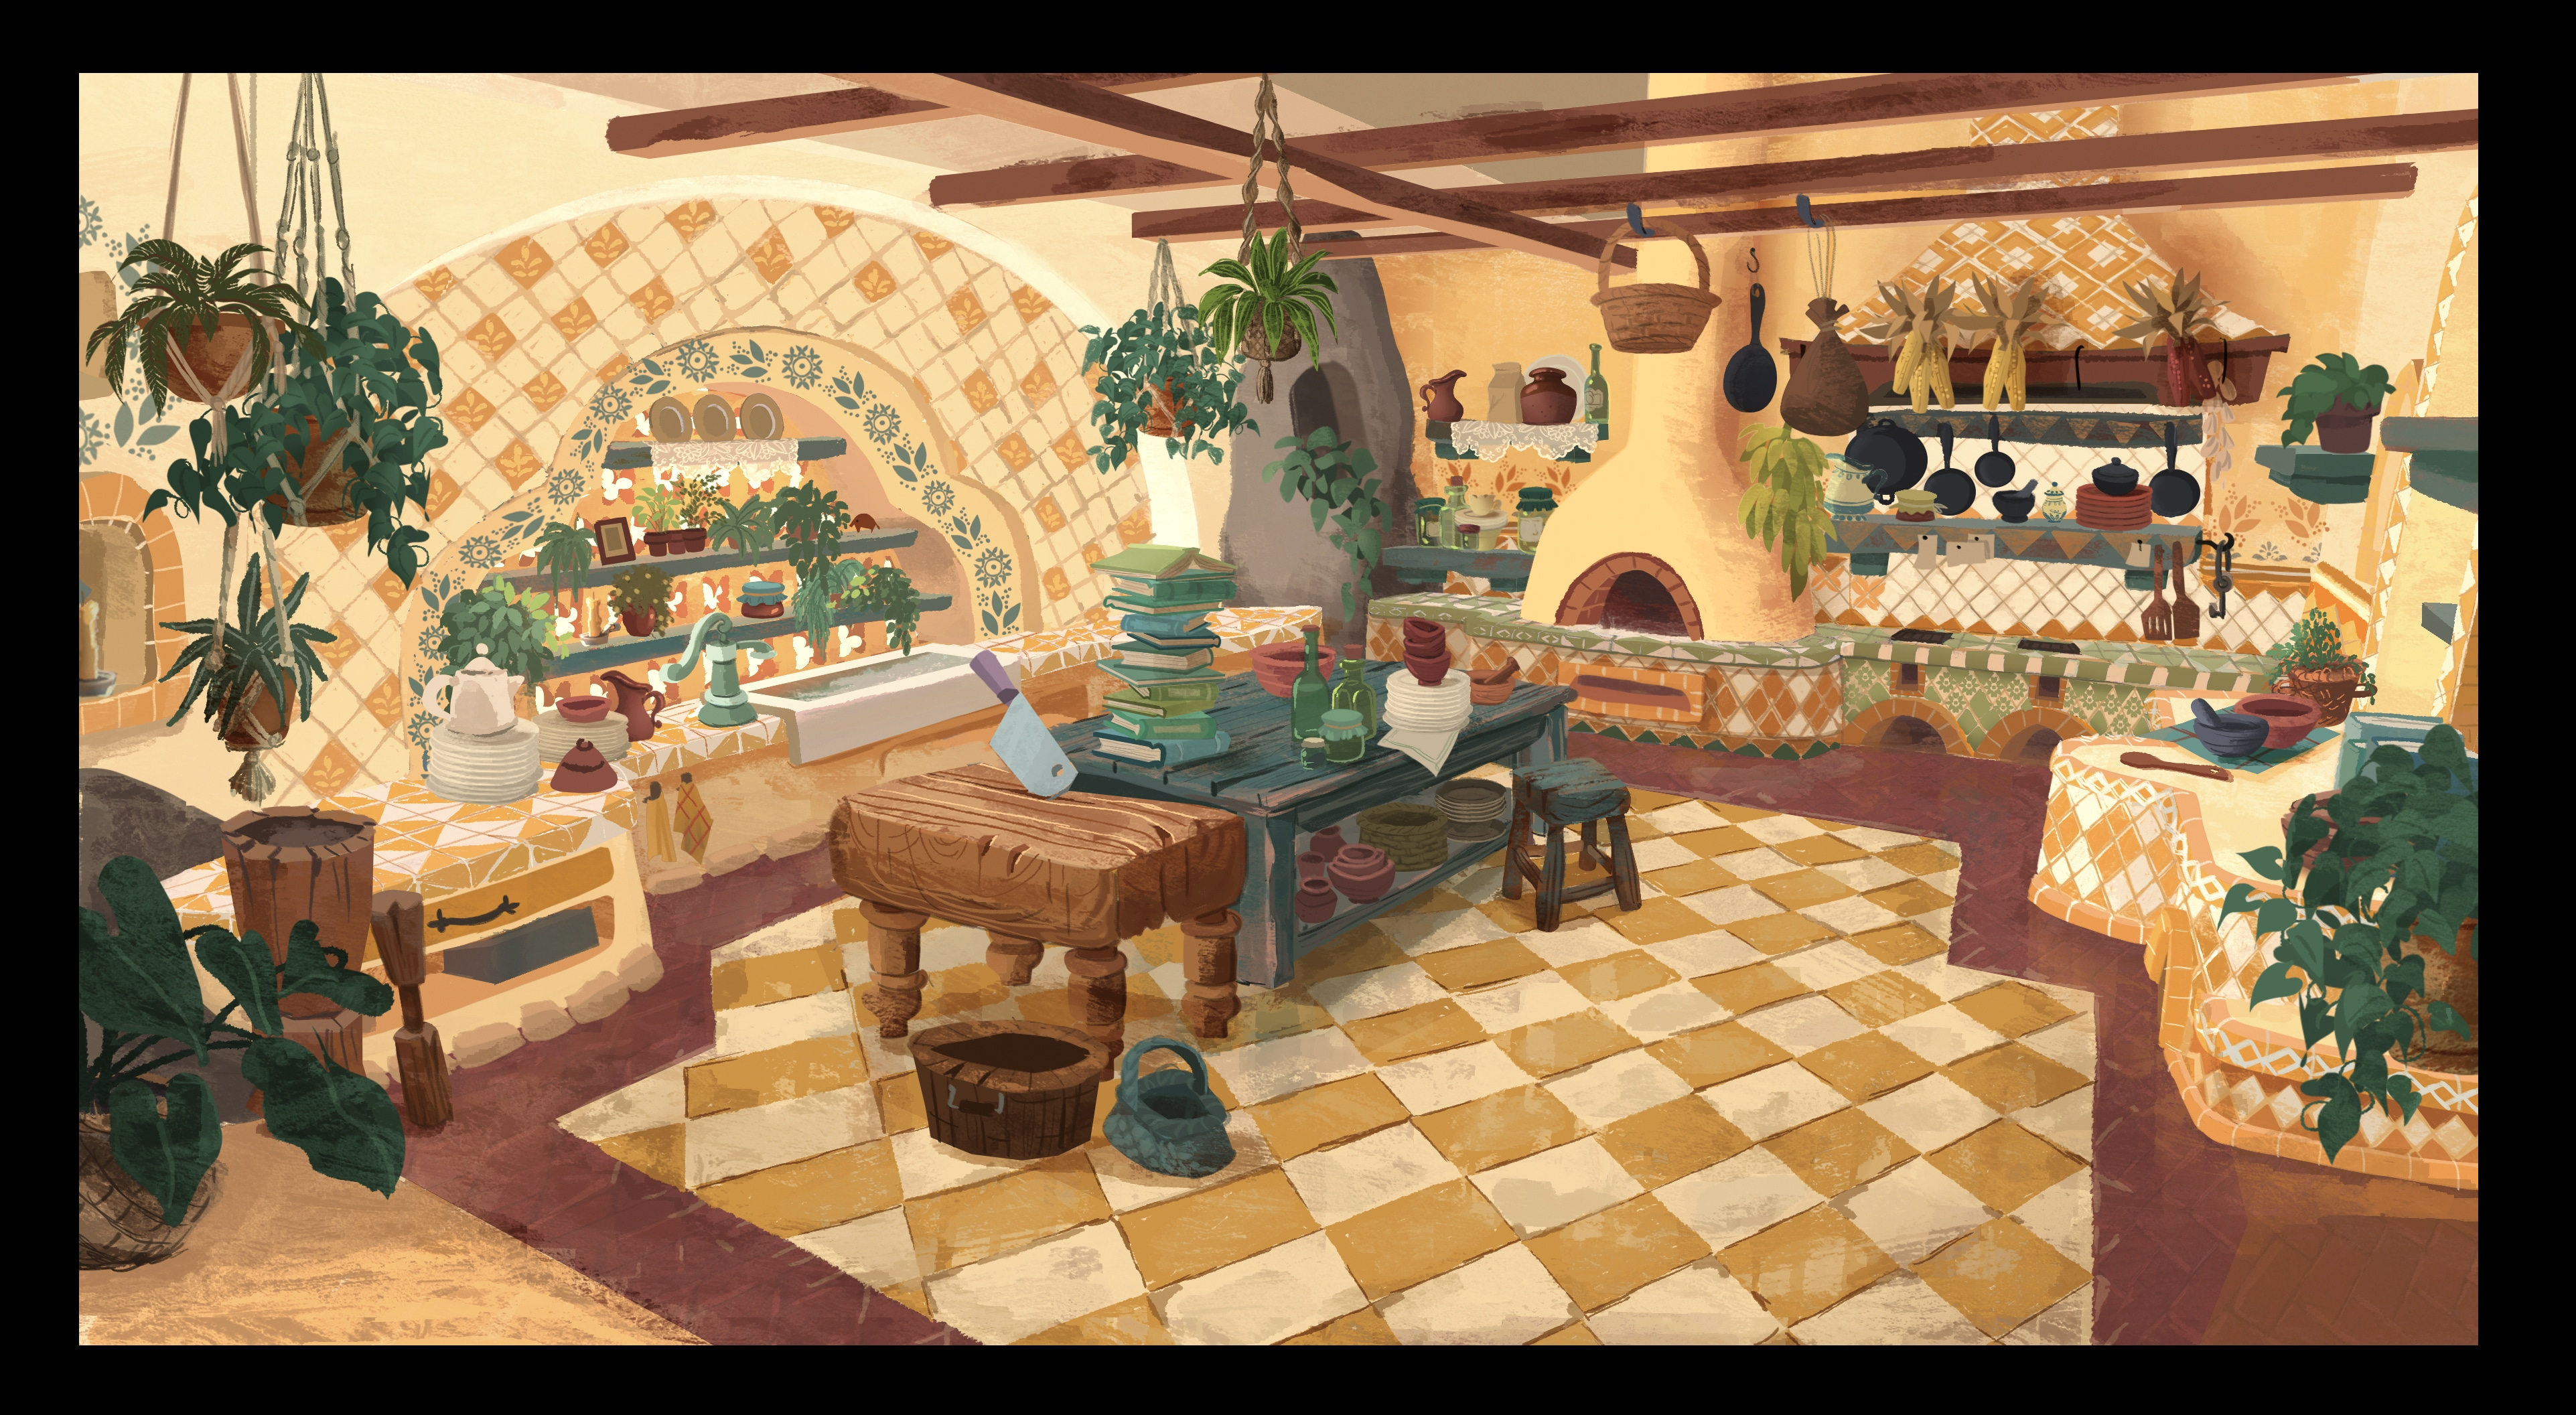 Final concept design for the kitchen.